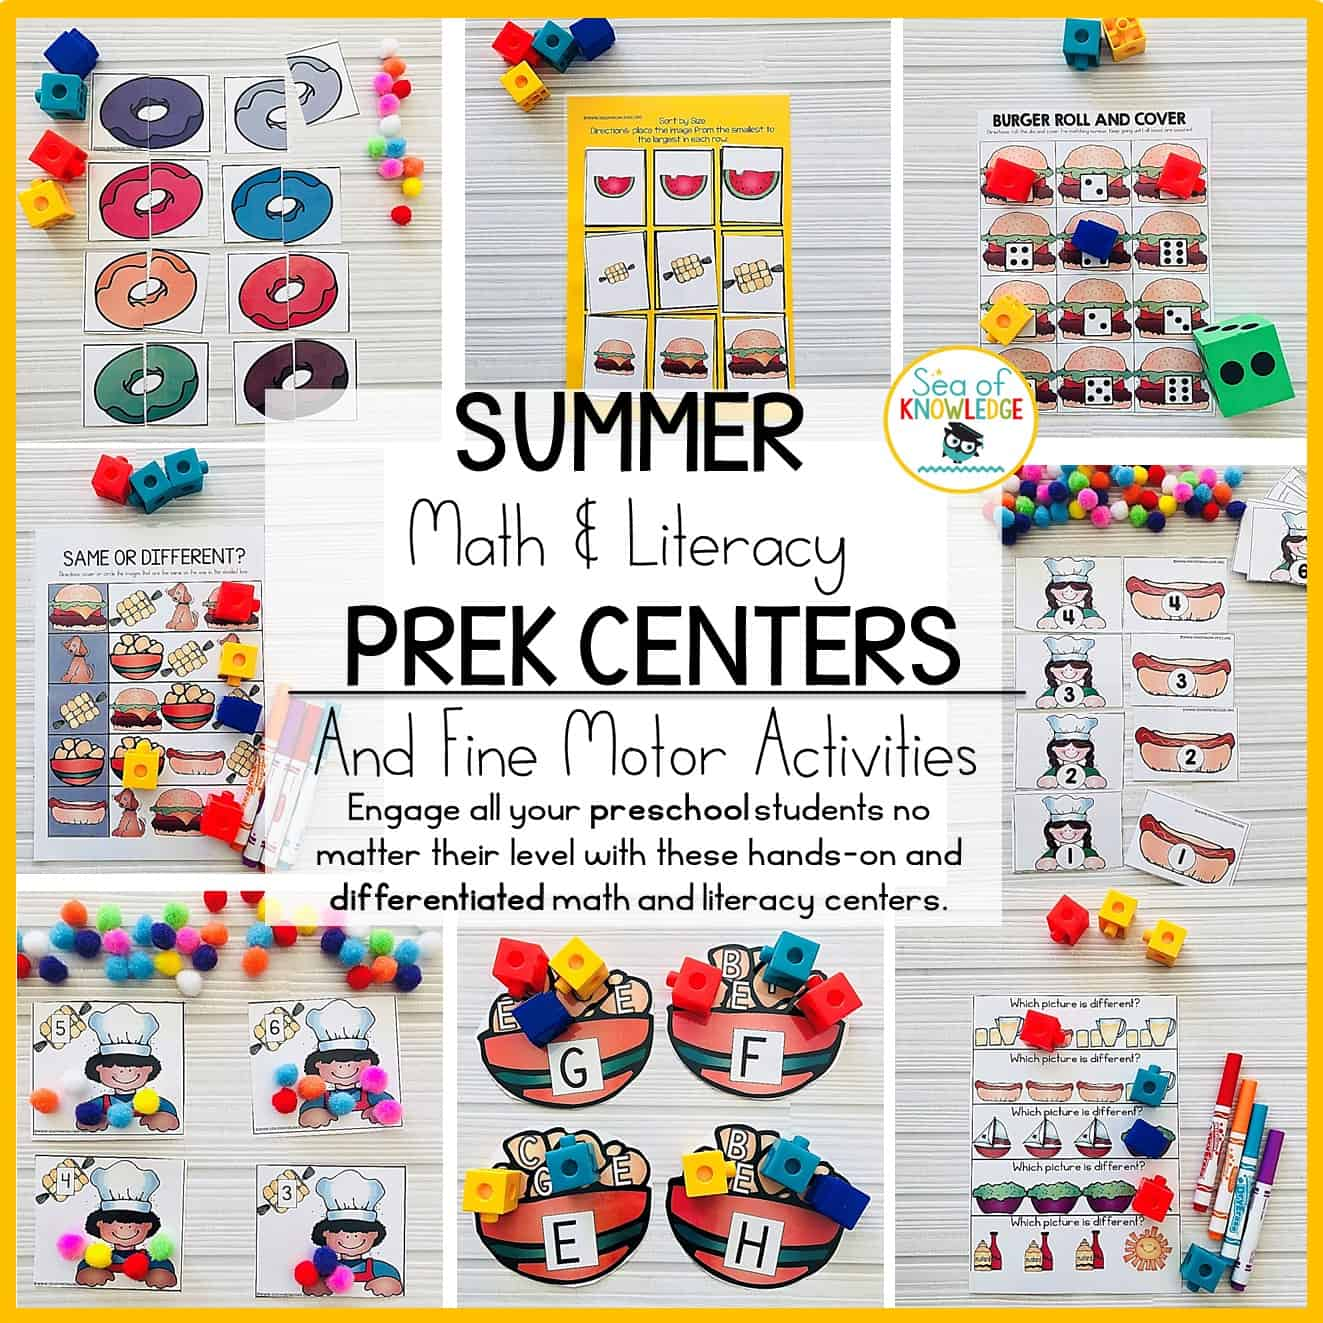 summer preschool math and literacy centers and fine motor activities age 3 sea of knowledge. Black Bedroom Furniture Sets. Home Design Ideas